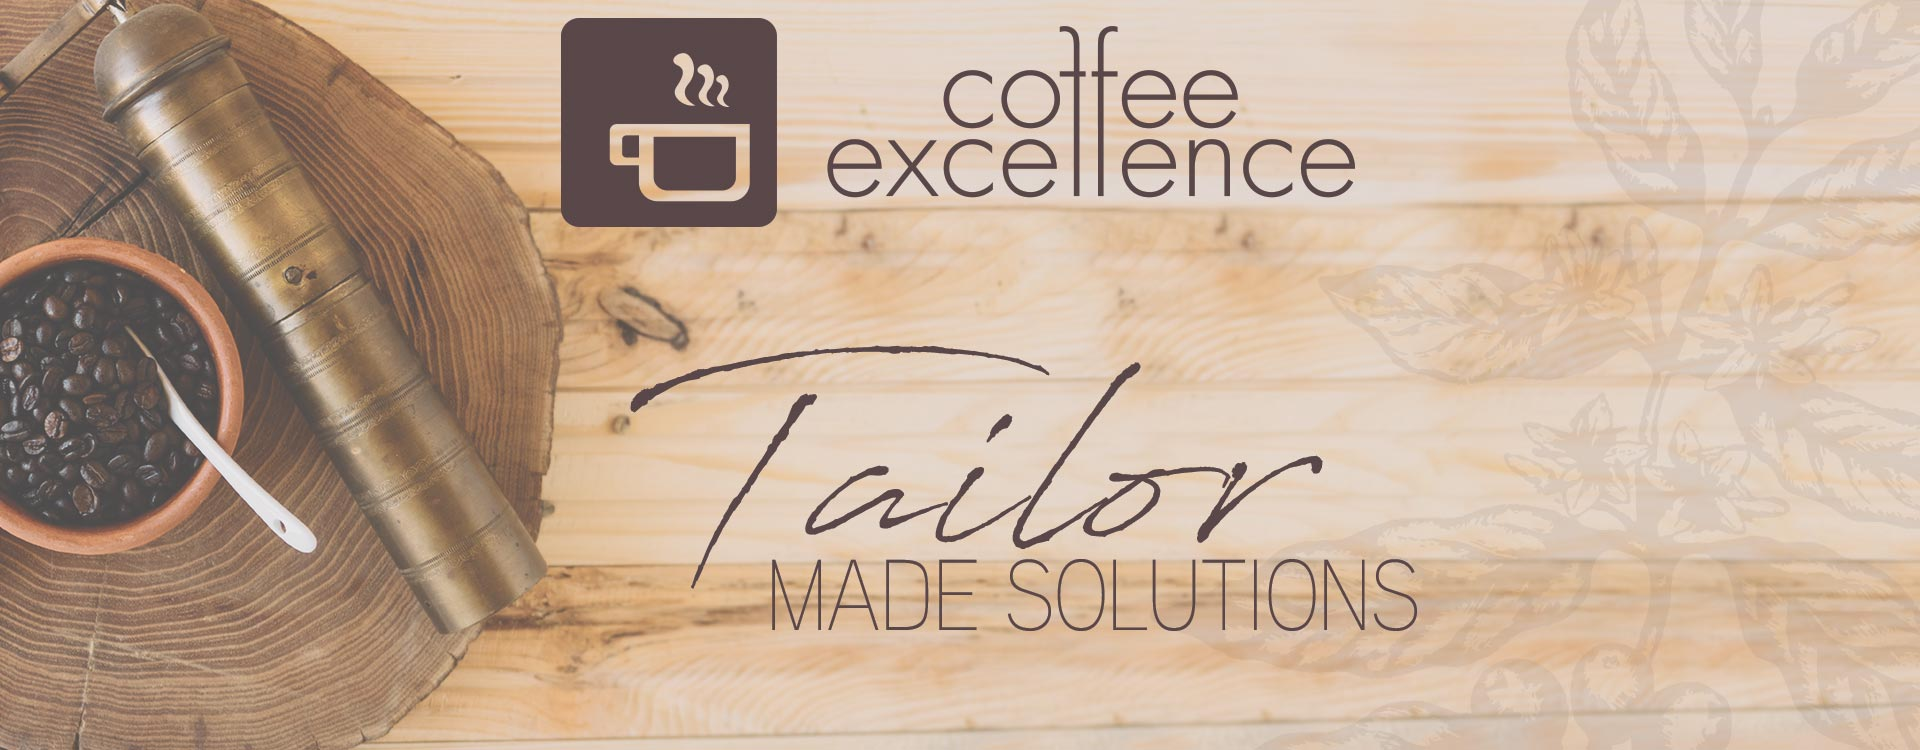 tailor-made-solutions-banner.jpg